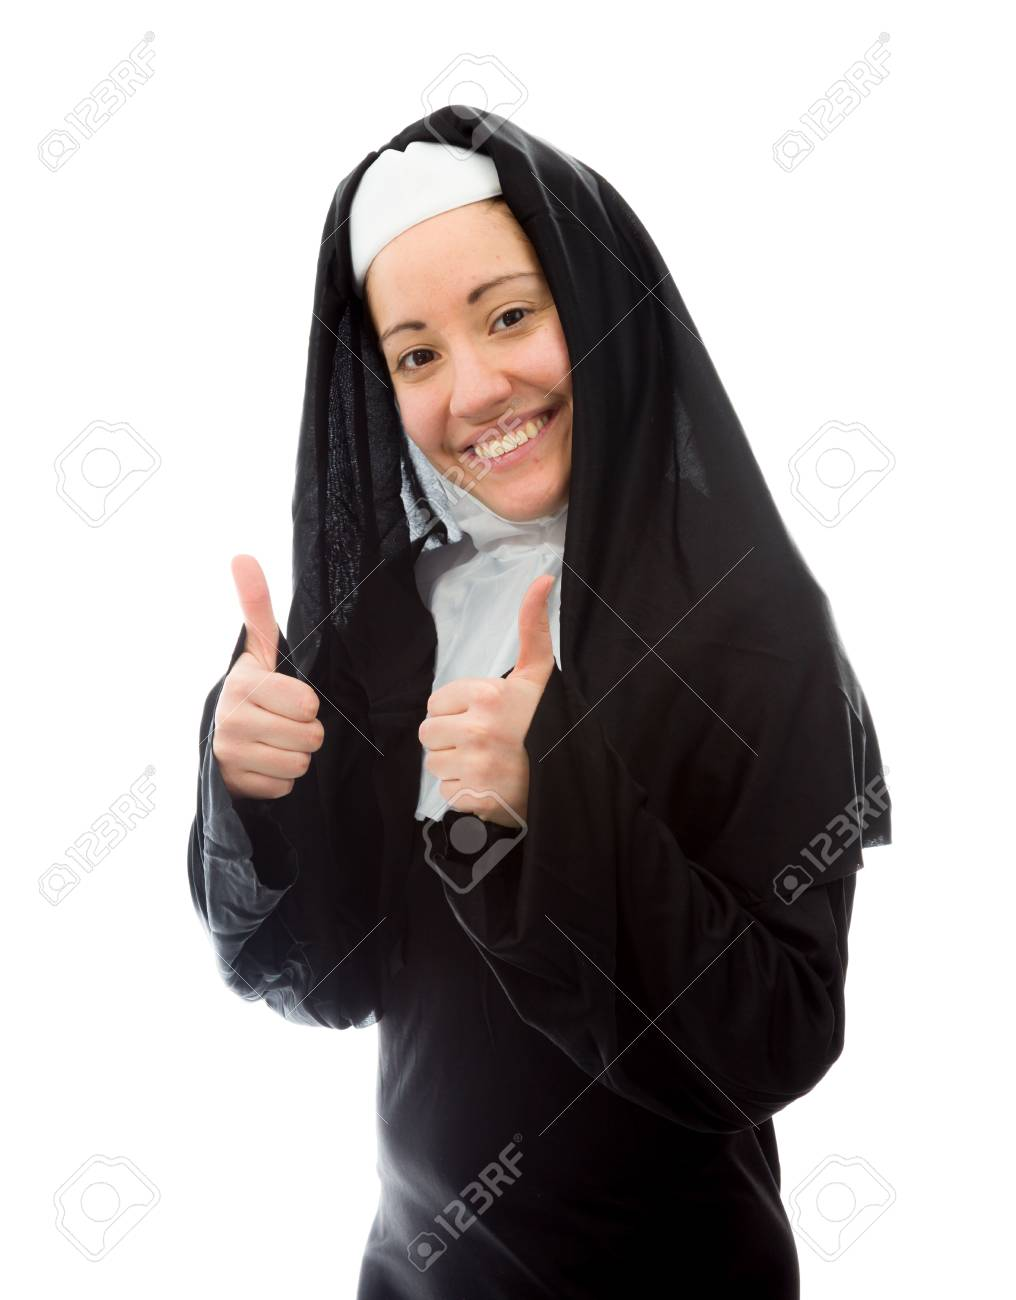 Young nun showing thumbs up sign with both hands Stock Photo - 29447927